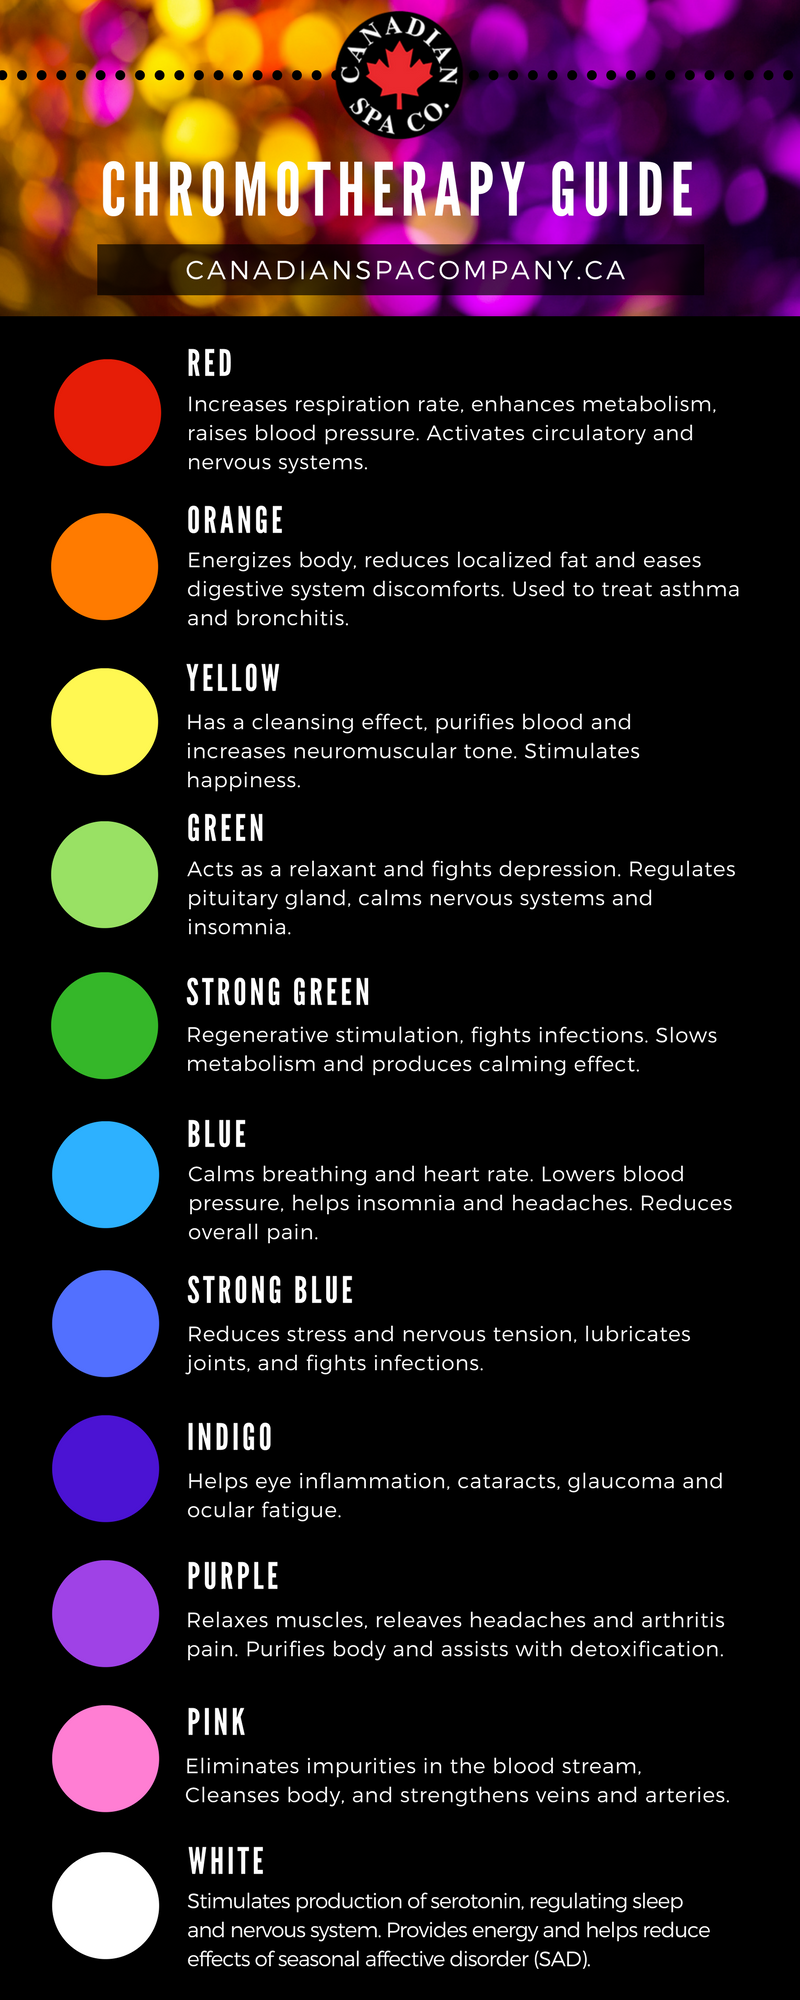 Colour therapy for digestion - Https Bcenter Org Bwell Therapies Chromotherapy0 Https Www Evolutionhealth Com Infrared_saunas Carbonfiber Color Therapy Html